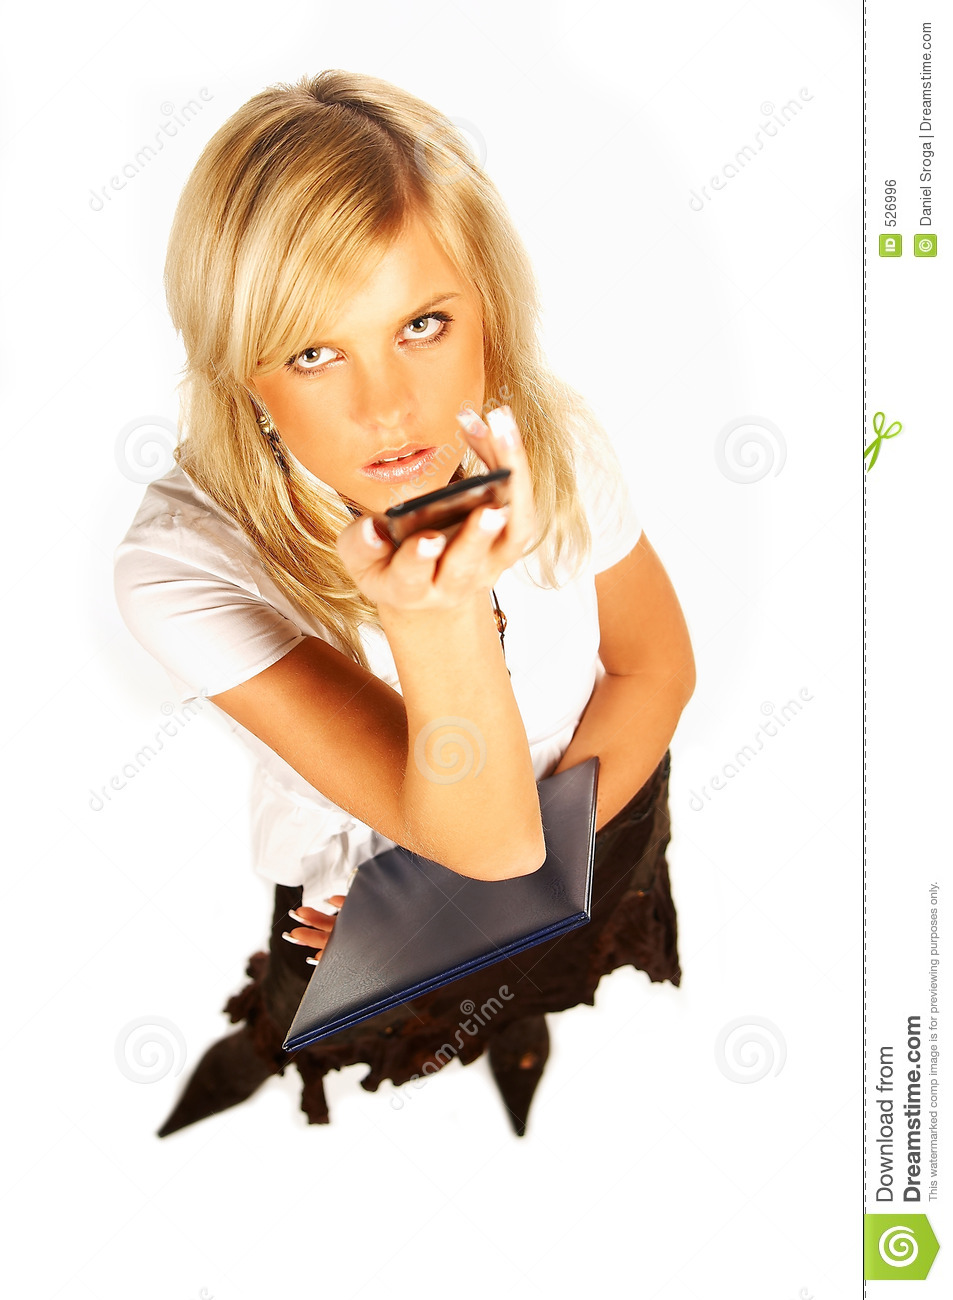 Business Woman On The Phone Stock Photo - Image of